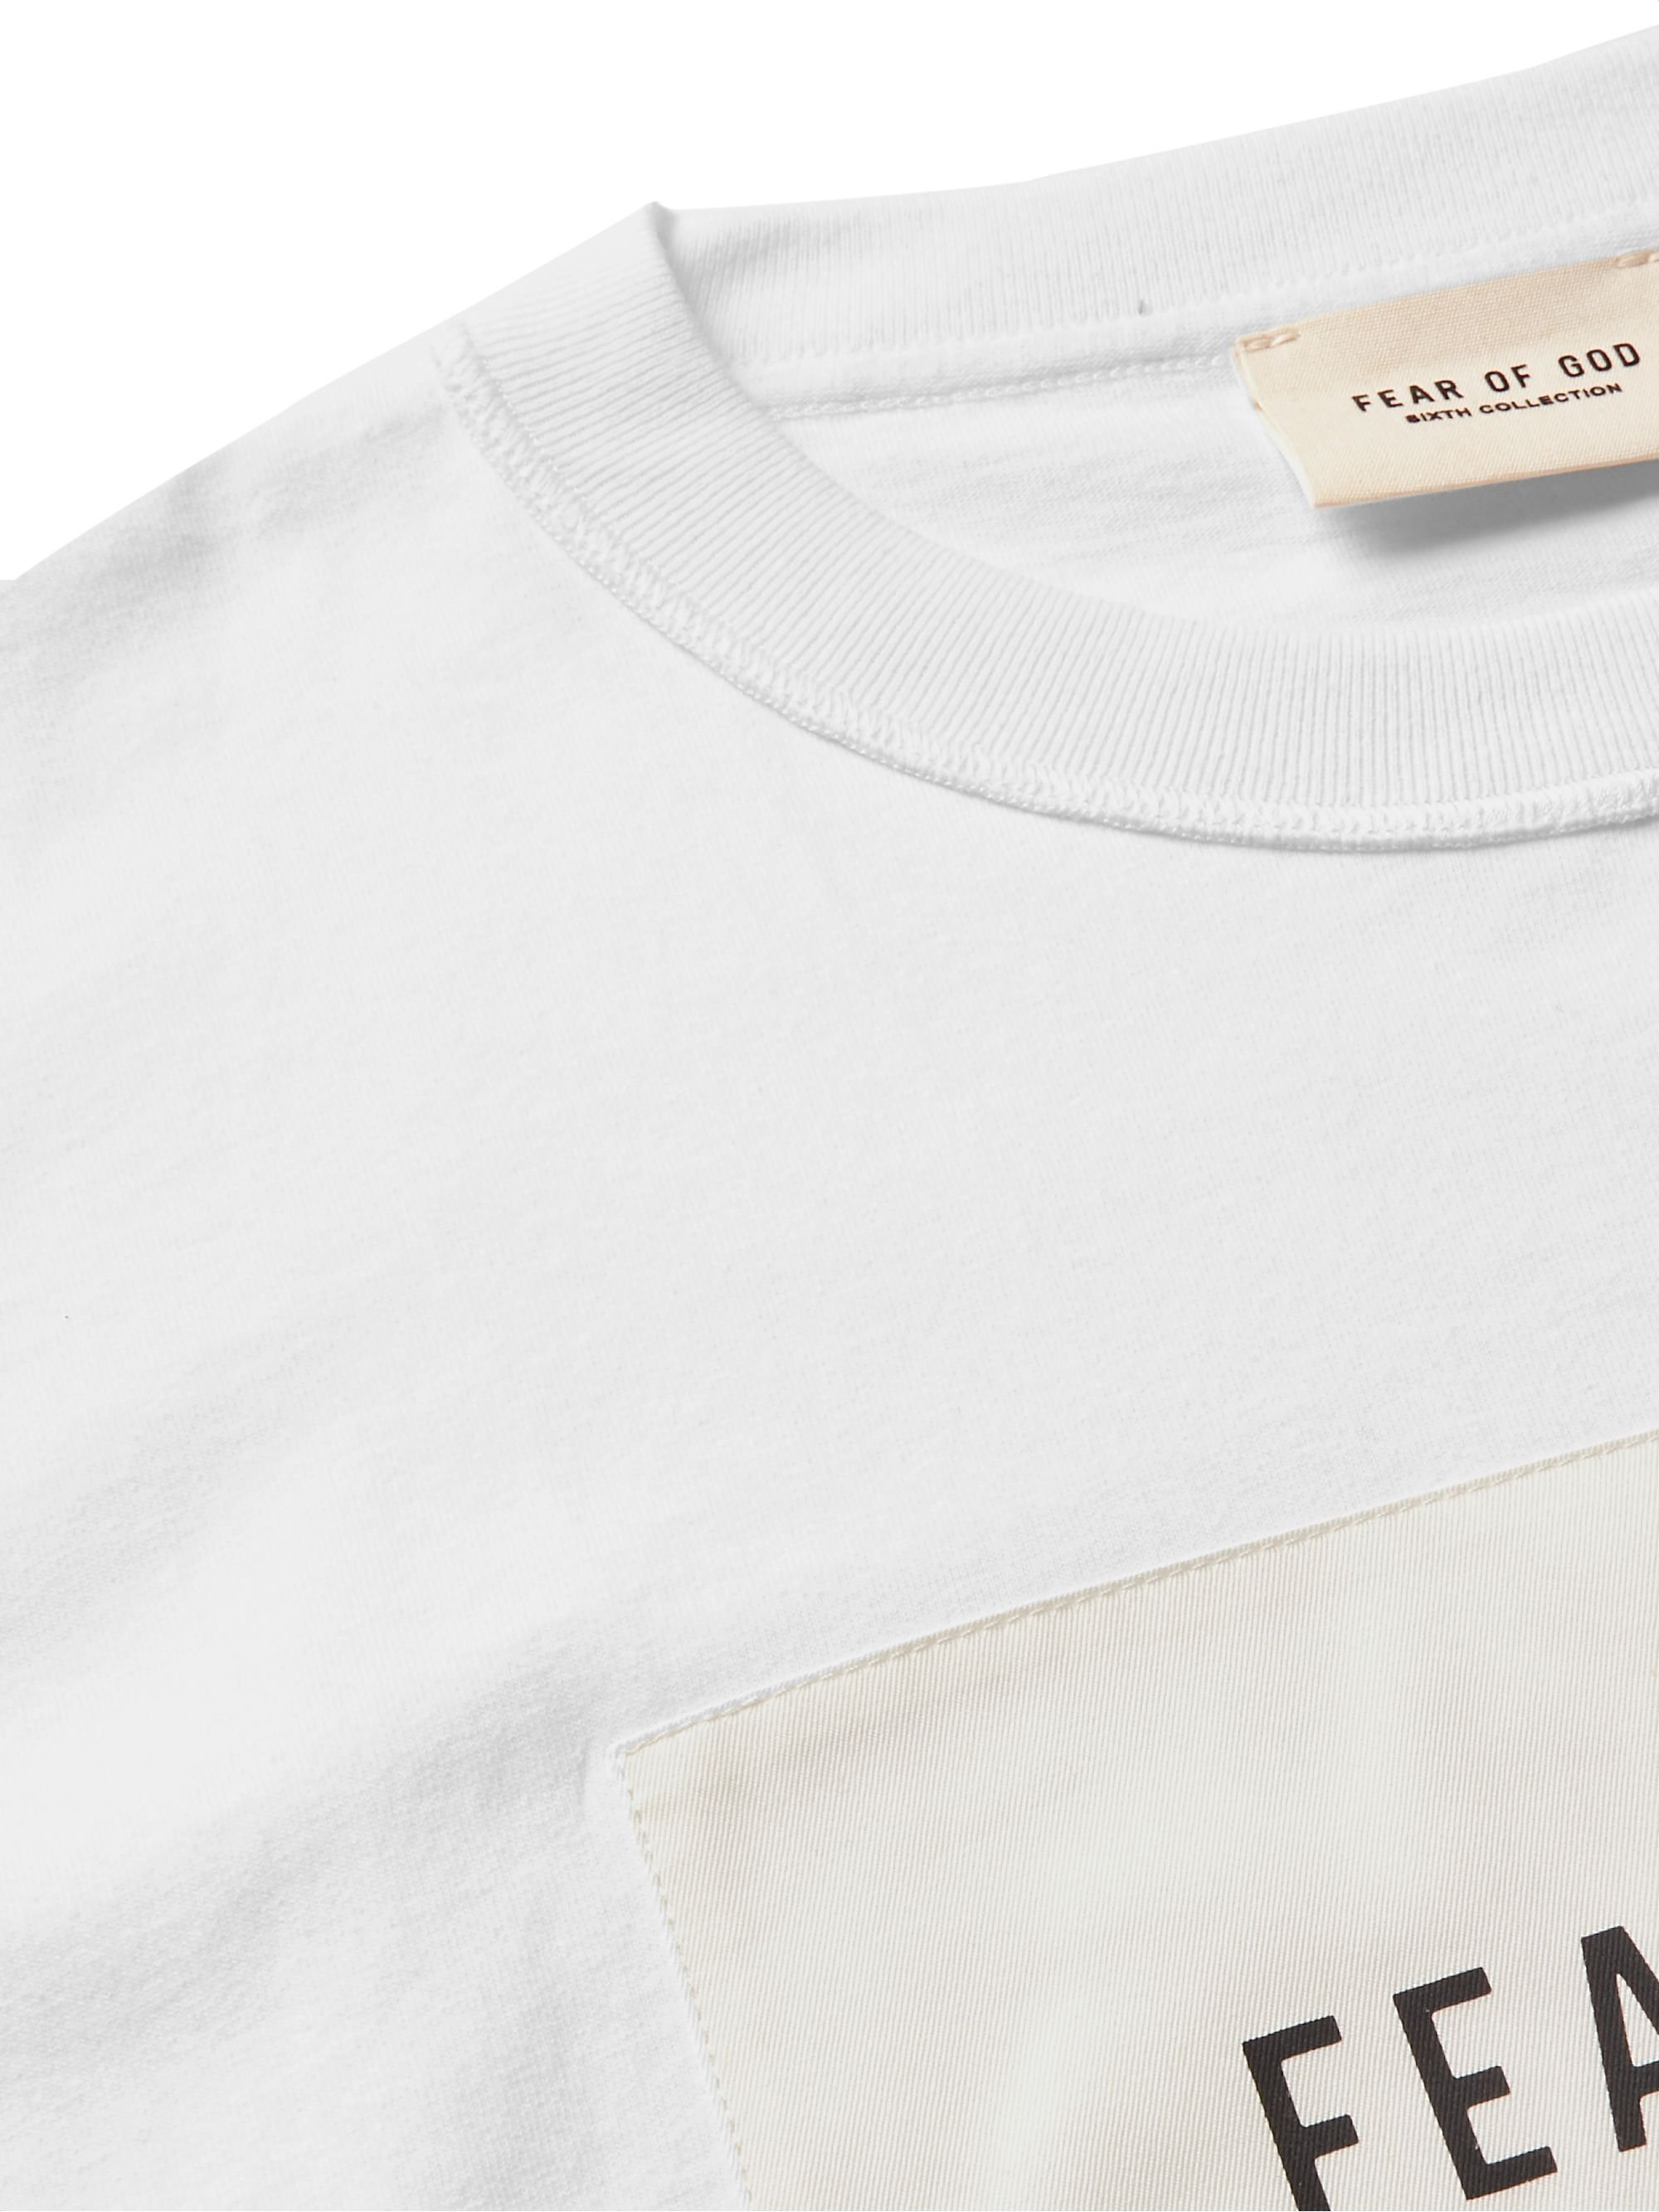 Fear of God Oversized Logo-Appliquéd Mélange Cotton-Blend Jersey T-Shirt